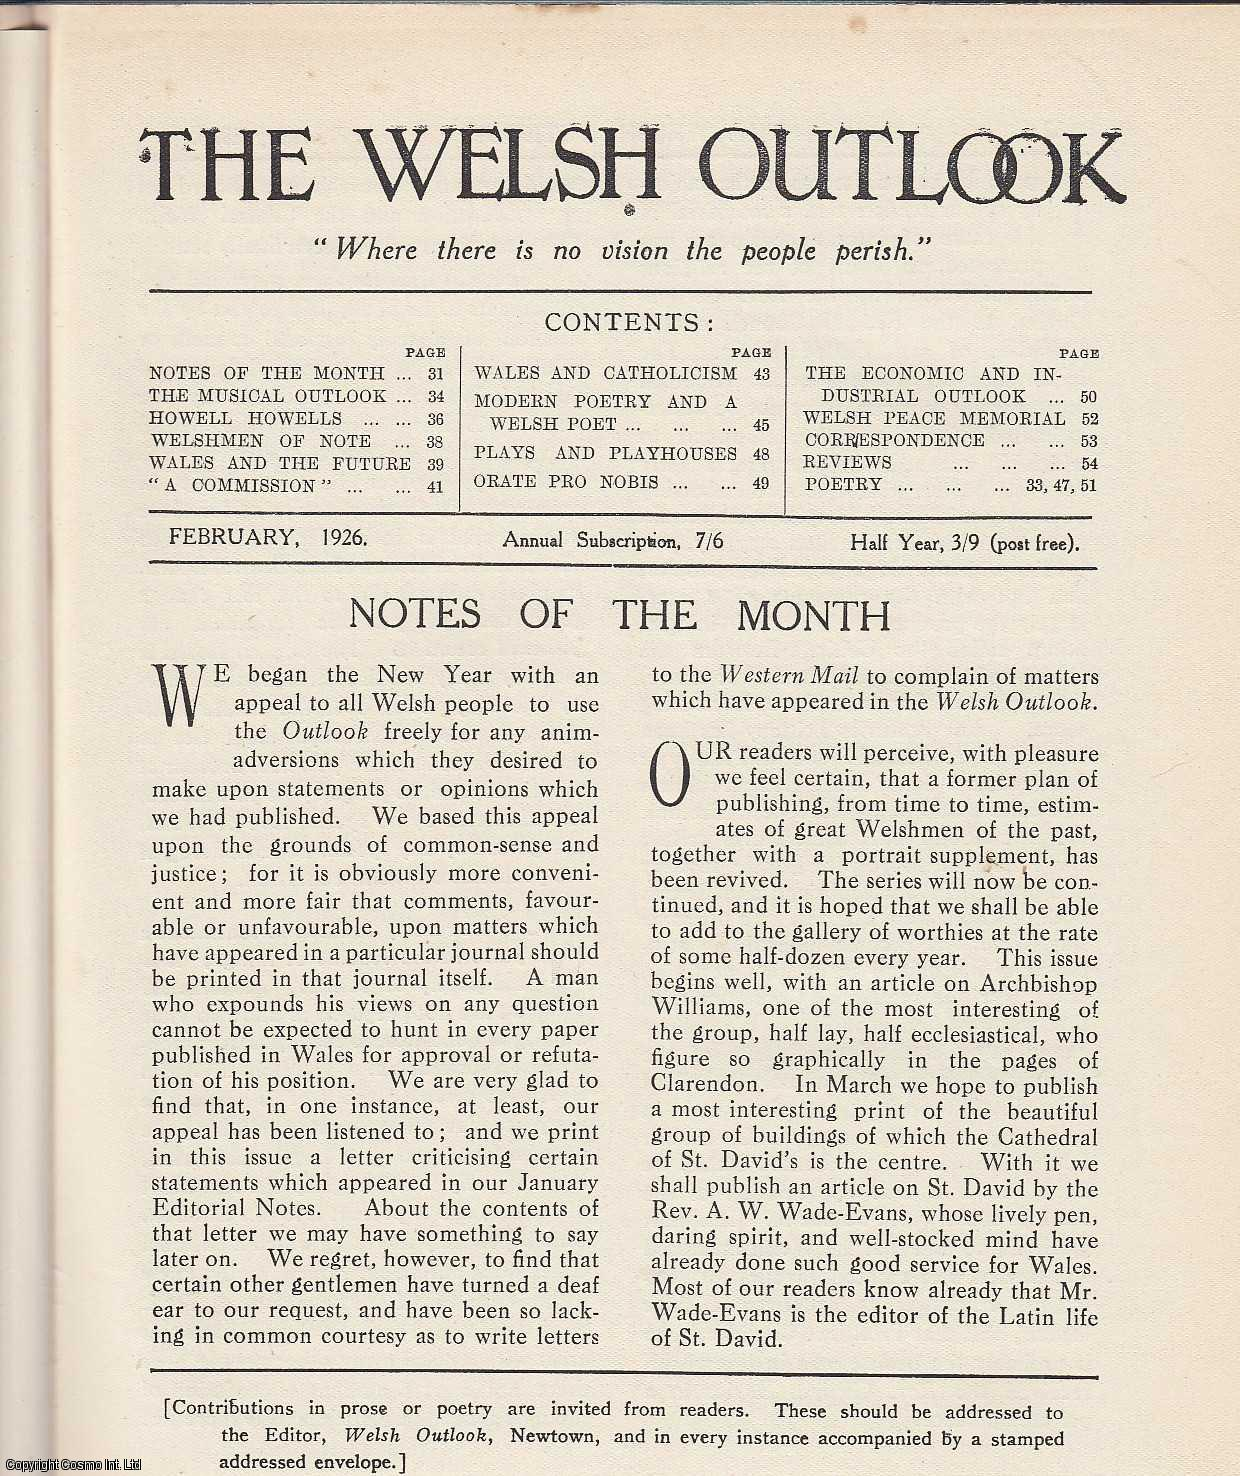 The Welsh Outlook. A Monthly Journal of National Social Progress. February, 1926. Contains; The Musical Outlook by Sir Walford Davies; Howell Howells: An Appreciation by D. James; Welshmen of Note: Archbishop Williams, 1582-1650 by A. Grace Roberts; Wales and The Future by D. Rees Williams; A Commission: Its Omissions and its Mission by J. Lloyd Thomas; Wales and Catholicism by J.E. de Hirsch-Davies; Modern Poetry and a Welsh Poet by E.A. Reid; Plays and Playhouses by Ifan Kyrle Fletcher; Orate Pro Nobis by Rev. Herbert Morgan; The Economic & Industrial Outlook by W. Tudor Davies; Poetry by J. Ellis Williams., Thomas Jones (Editor)